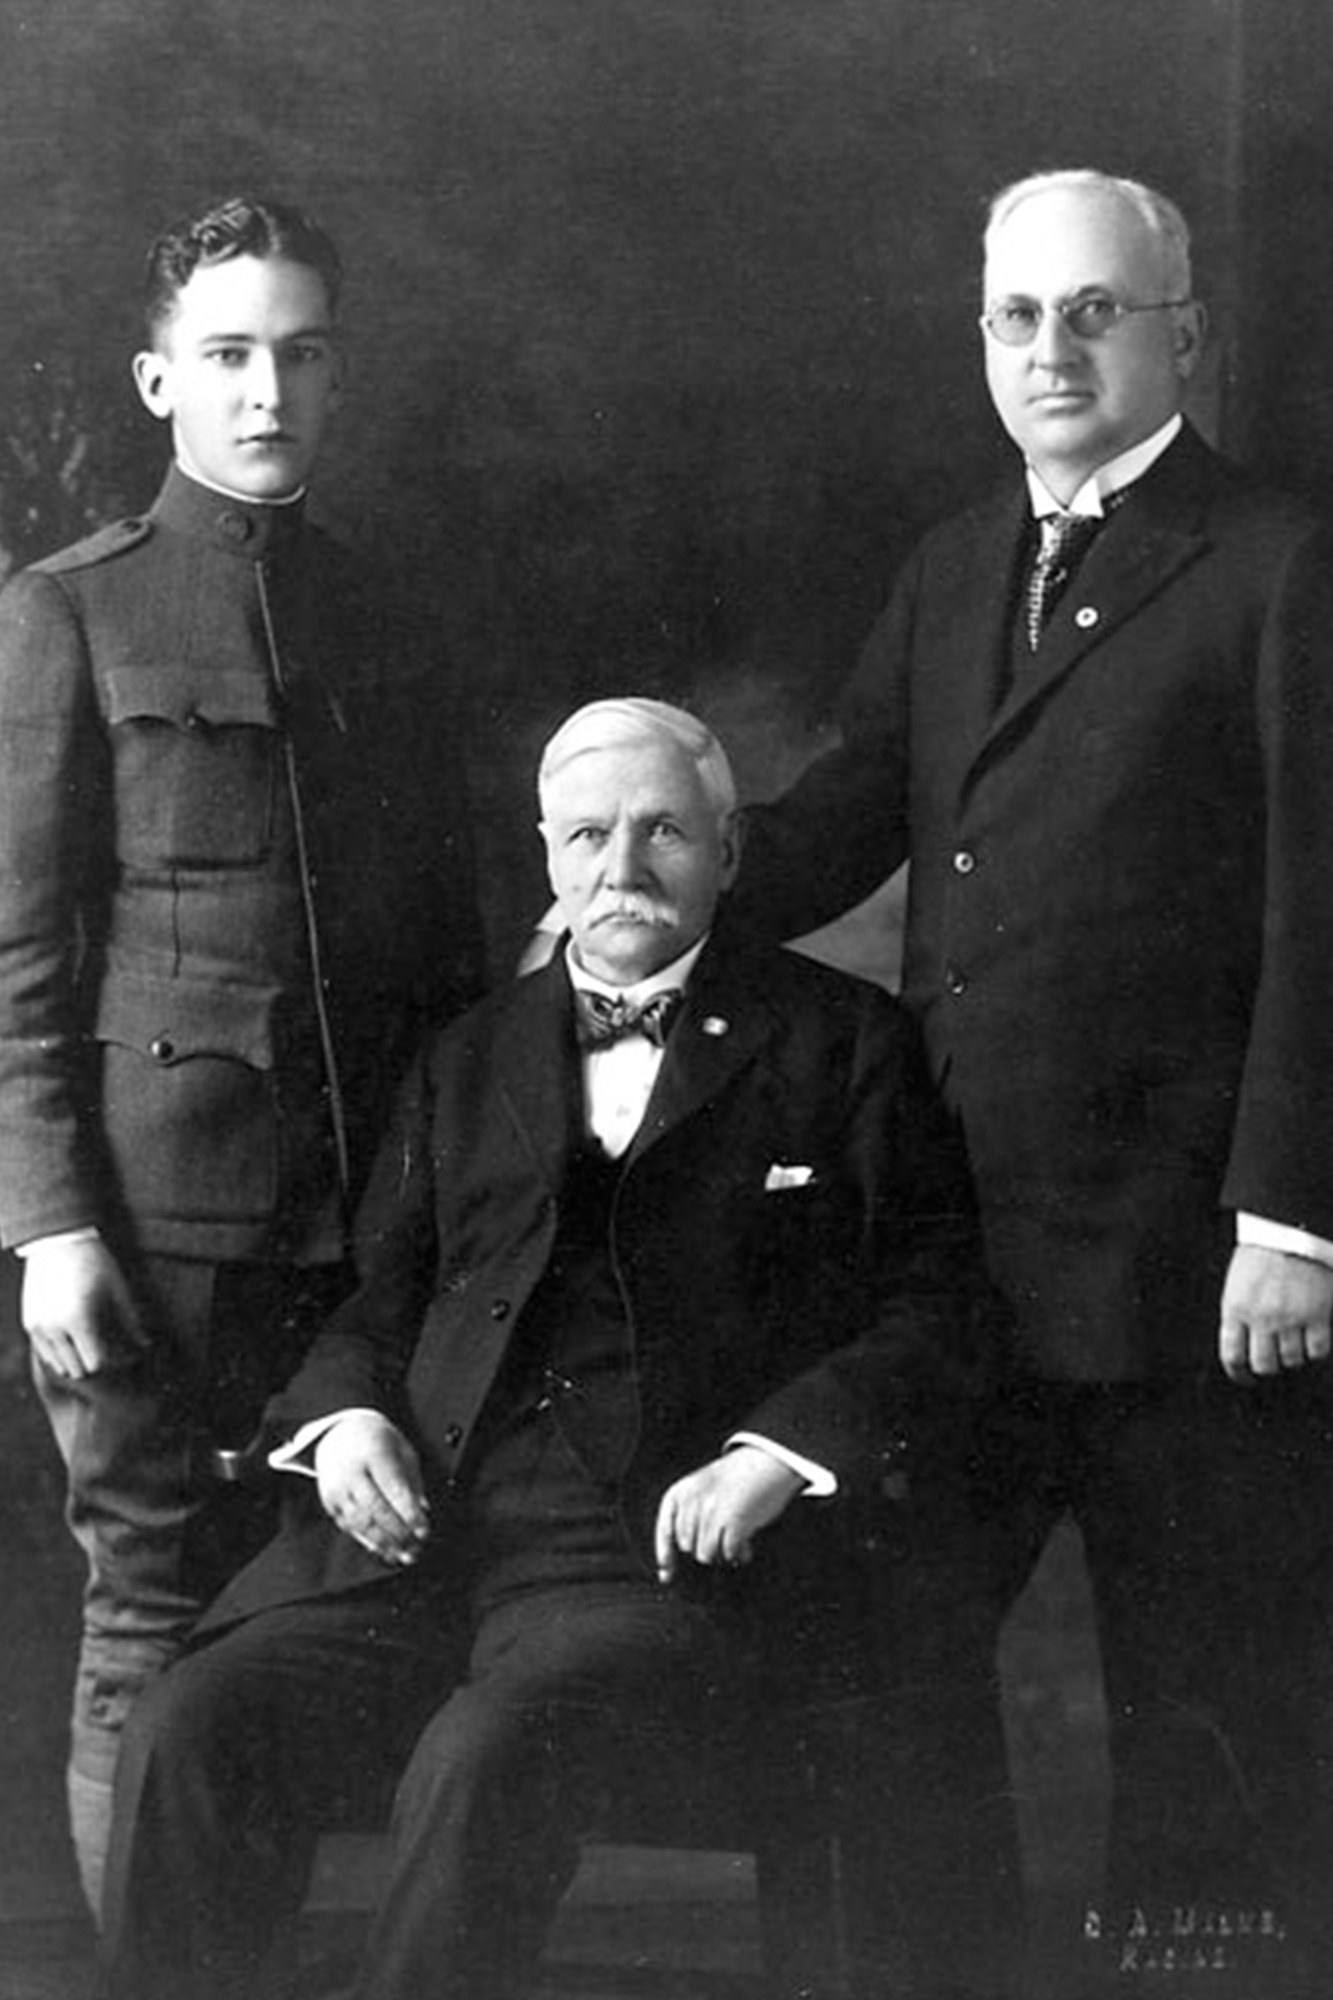 Potret Herbert. F. Johnson, Sr. dengan Samuel Curtis Johnson dan Herbert F Johnson, Jr.